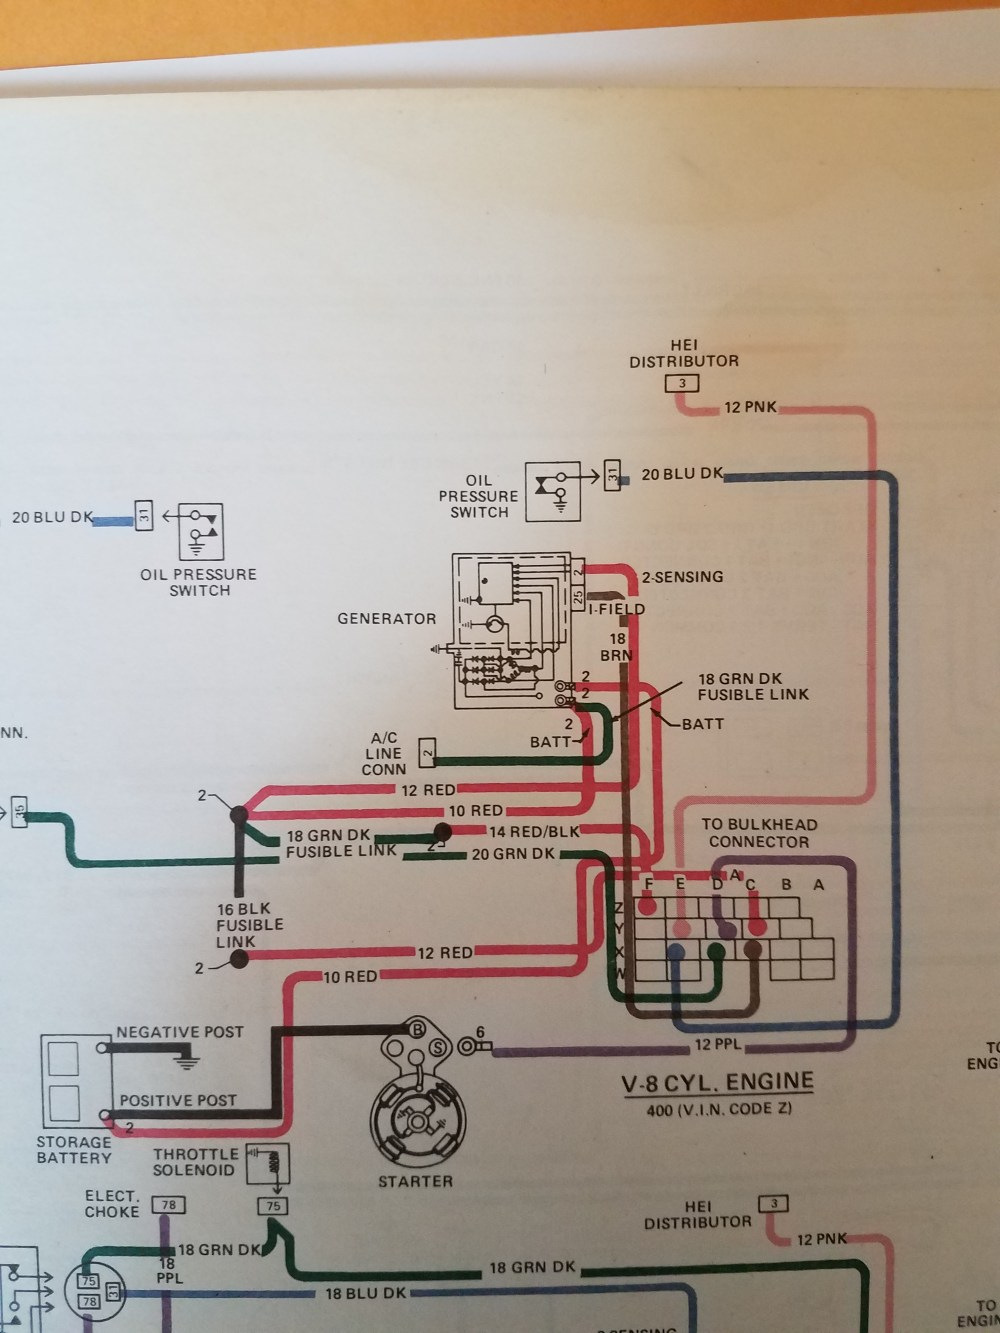 medium resolution of 86 trans am wiring diagram wiring library rh 48 yoobi de 2001 trans am wiring diagram 1988 trans am wiring diagram